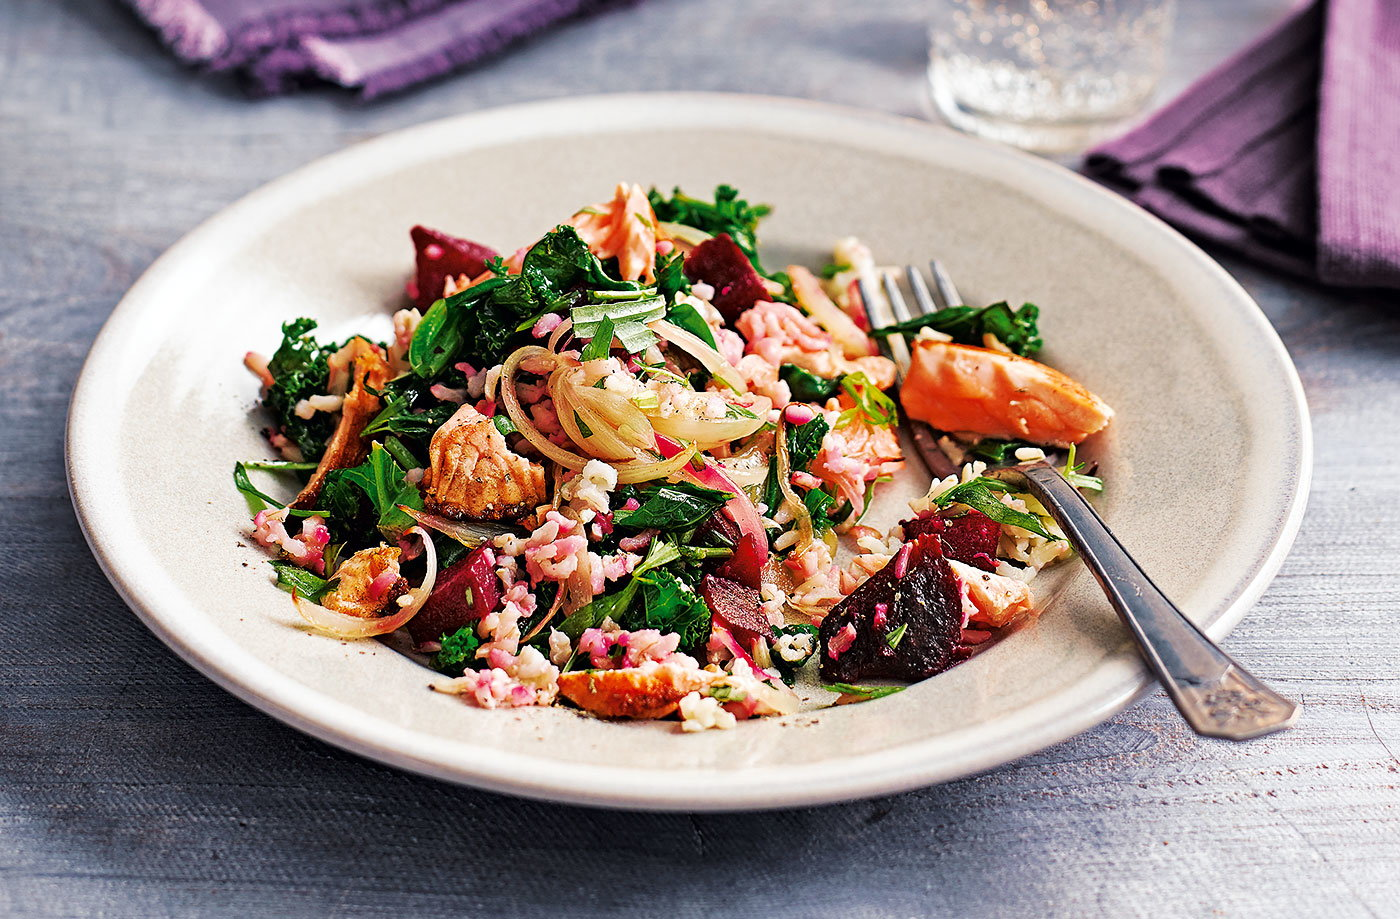 Salmon, beetroot and baby greens pilaf